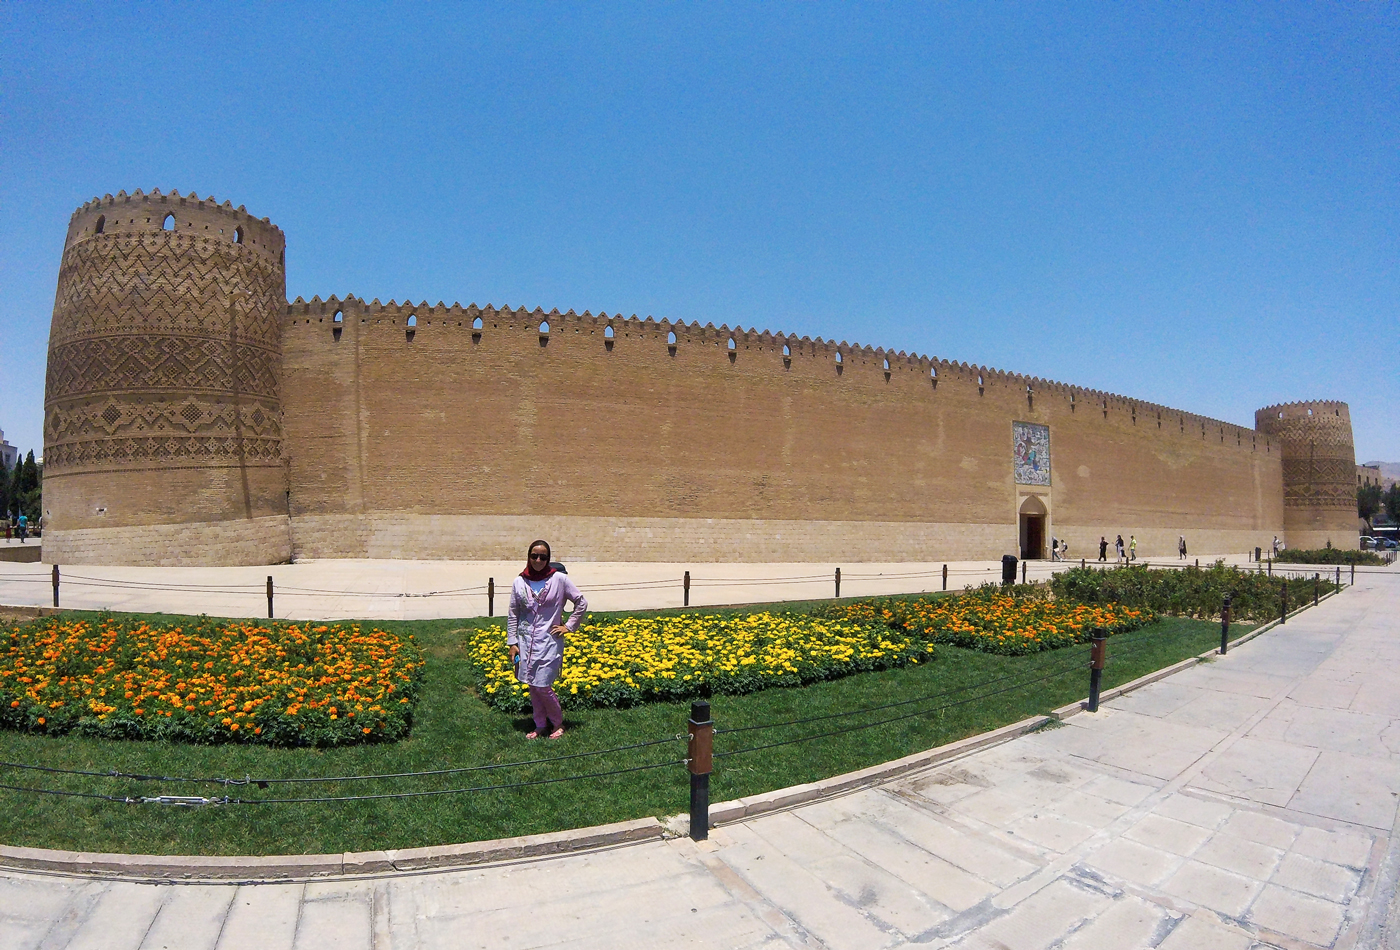 Voyage à vélo, traverser l'Iran à vélo, citadelle de Karim Khan au centre ville de Shiraz. Cycling travel, biketouring, cycling Iran, the Karim Khan Castle, a citadel located in downtown Shiraz.